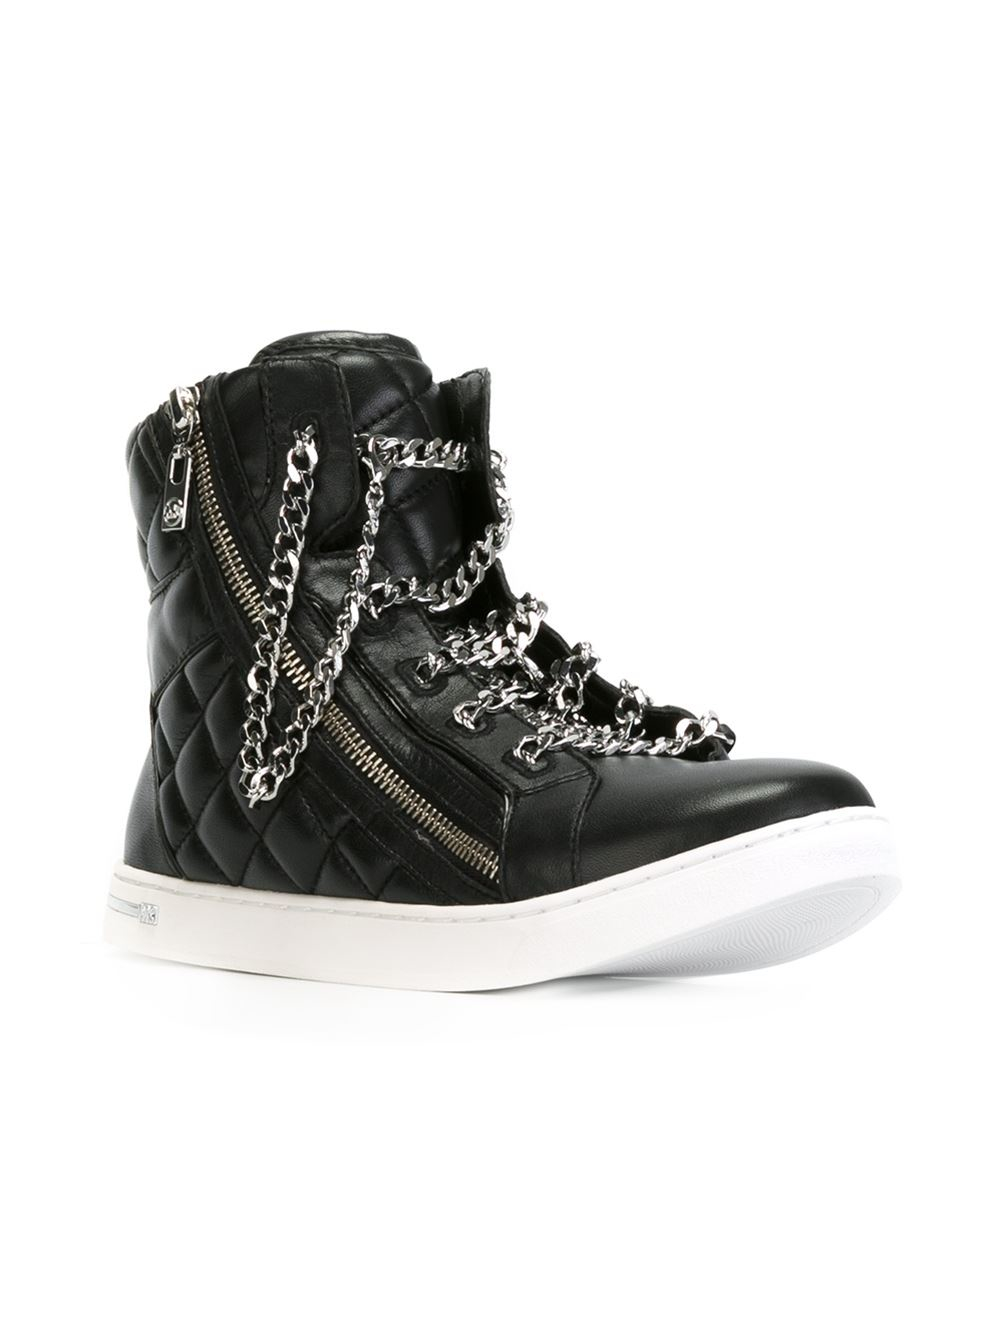 michael michael kors urban chain high top sneaker product 0 992595249. Black Bedroom Furniture Sets. Home Design Ideas